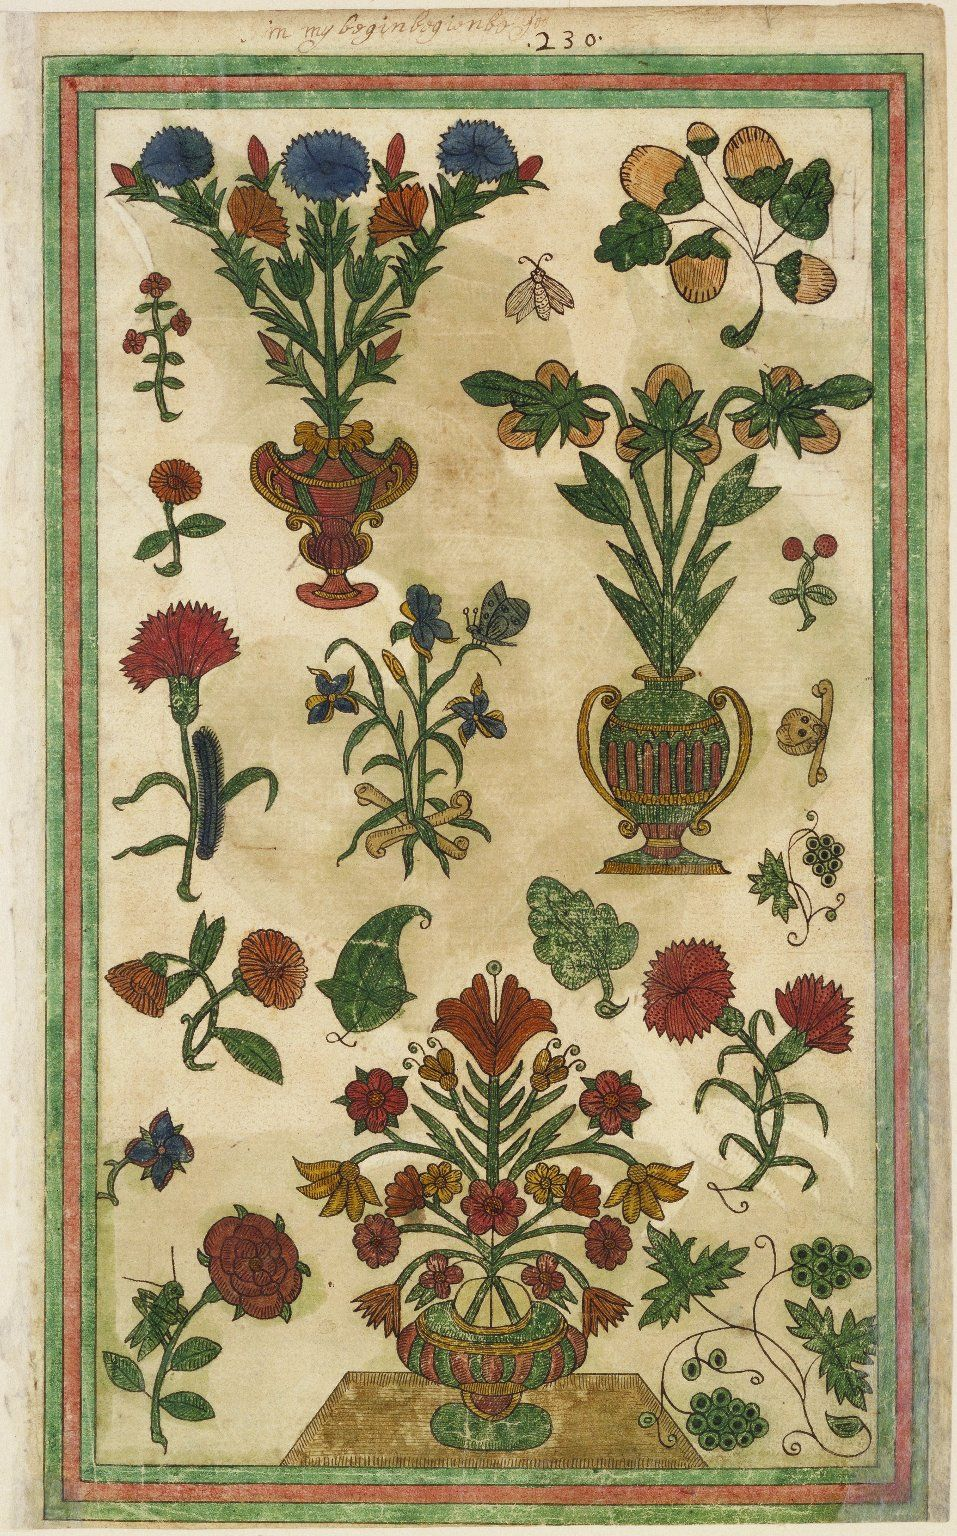 Thomas trevelyon miscellany 1608 folger stylized flowers thomas trevelyon miscellany 1608 folger embroidery bankloansurffo Image collections